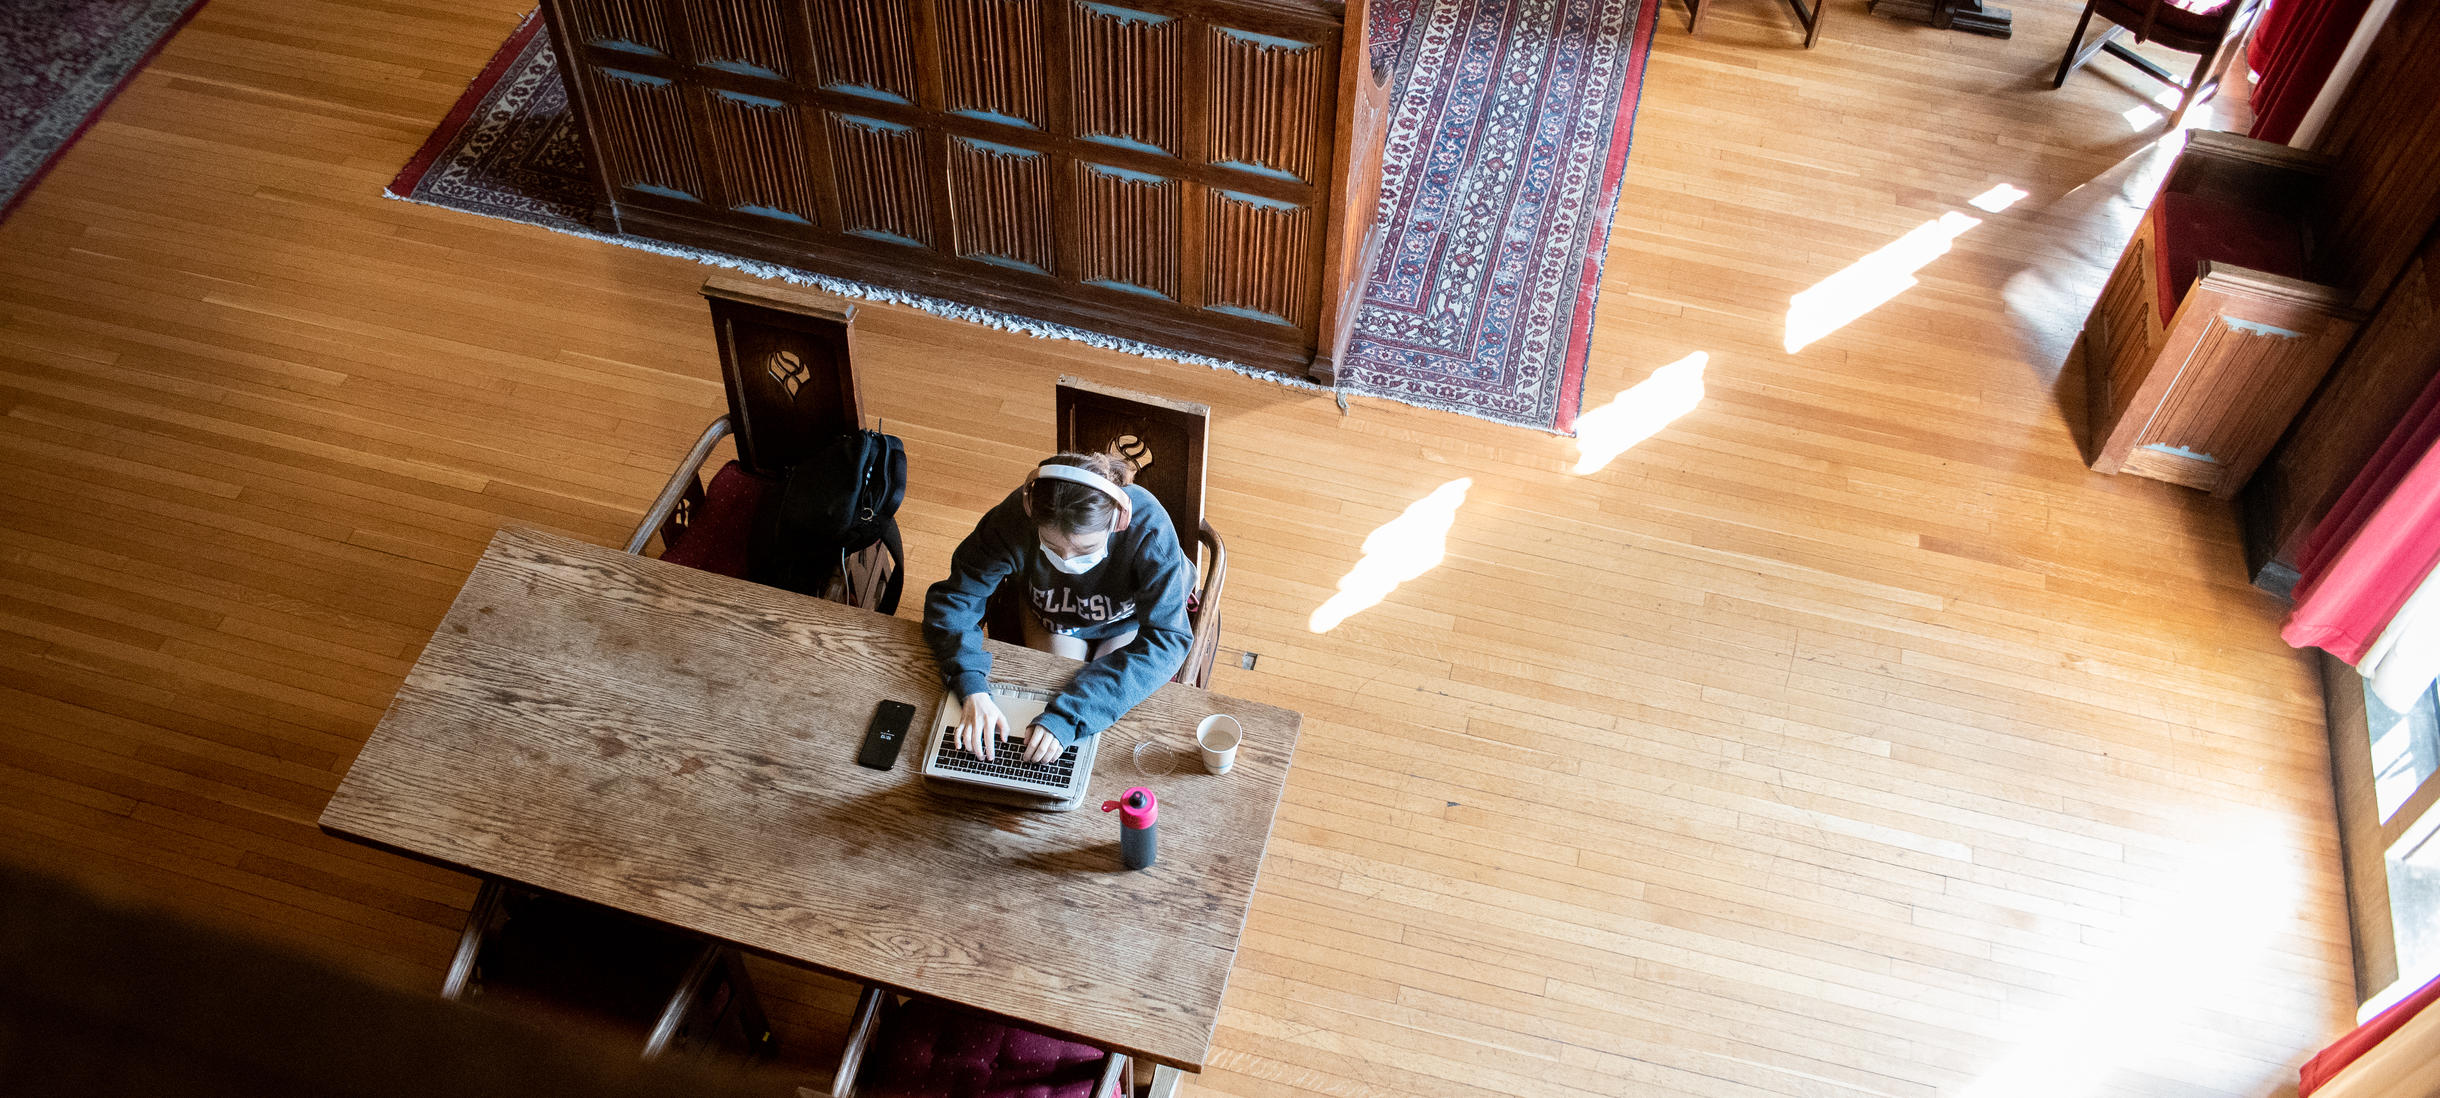 Picture of student, library, studying, oriental rugs, wood floors, sunlight.